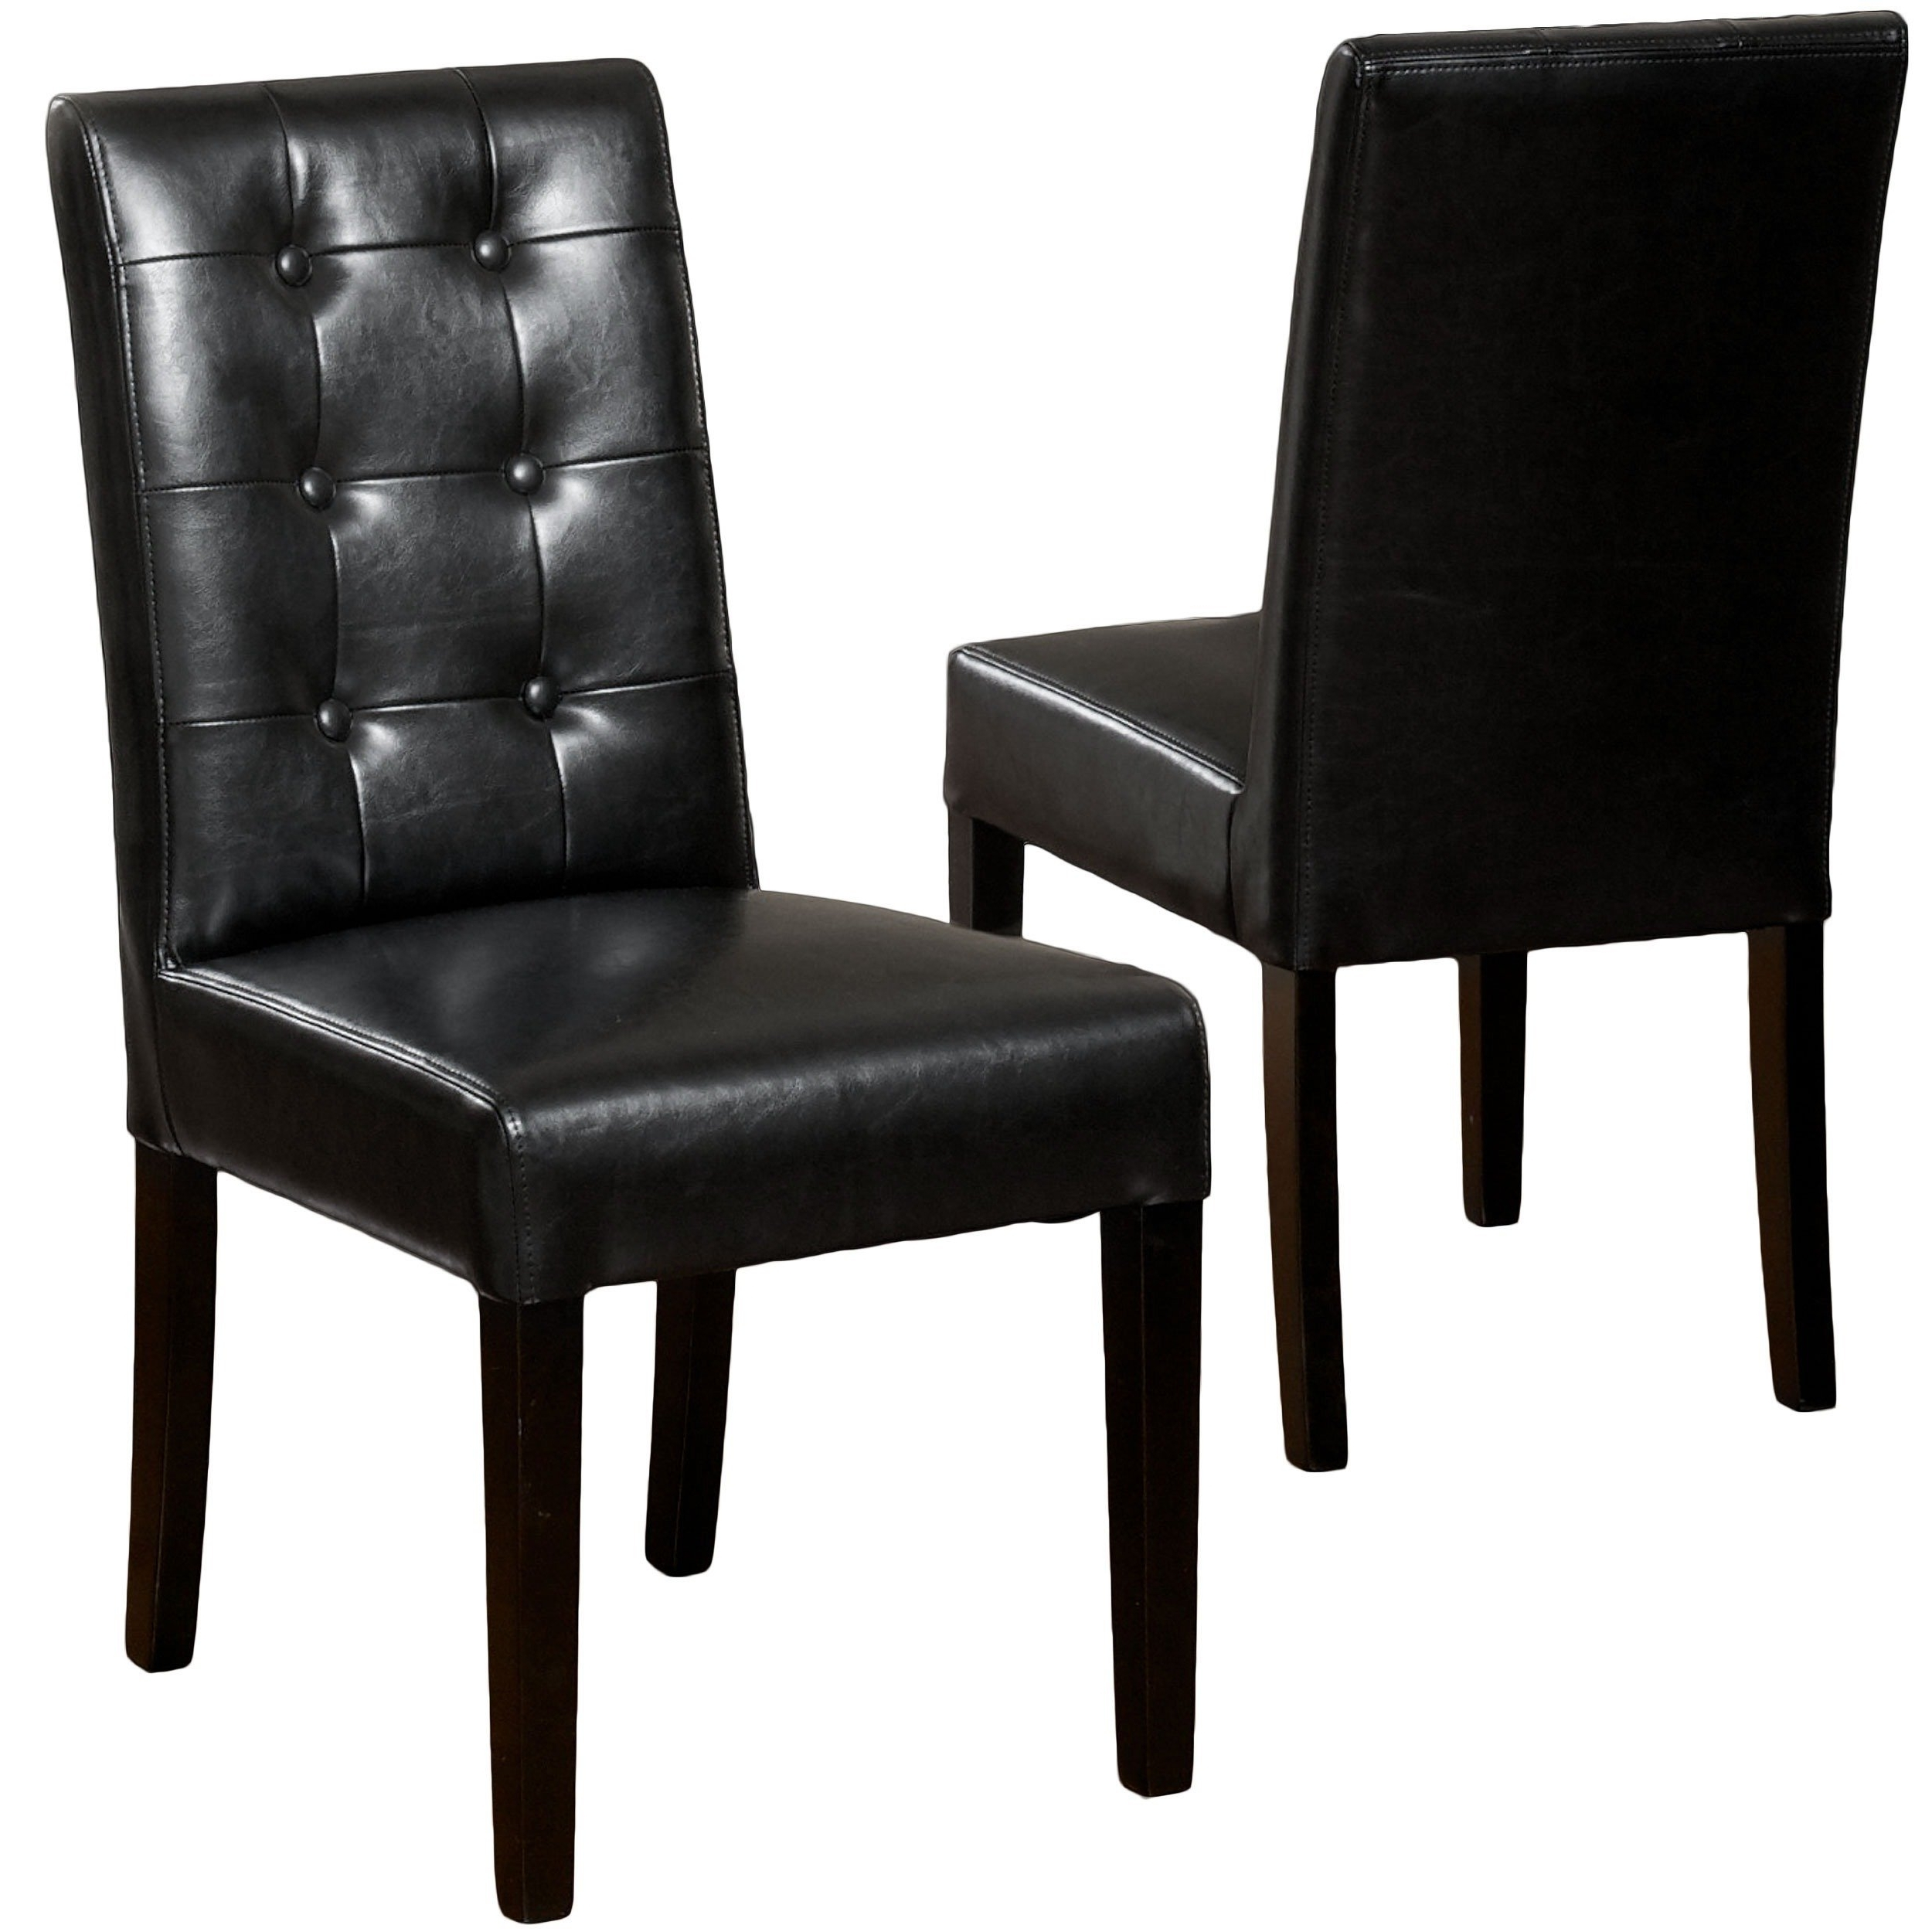 2017 Shop Roland Black Leather Dining Chairs (Set Of 2)Christopher Pertaining To Black Dining Chairs (Gallery 8 of 25)